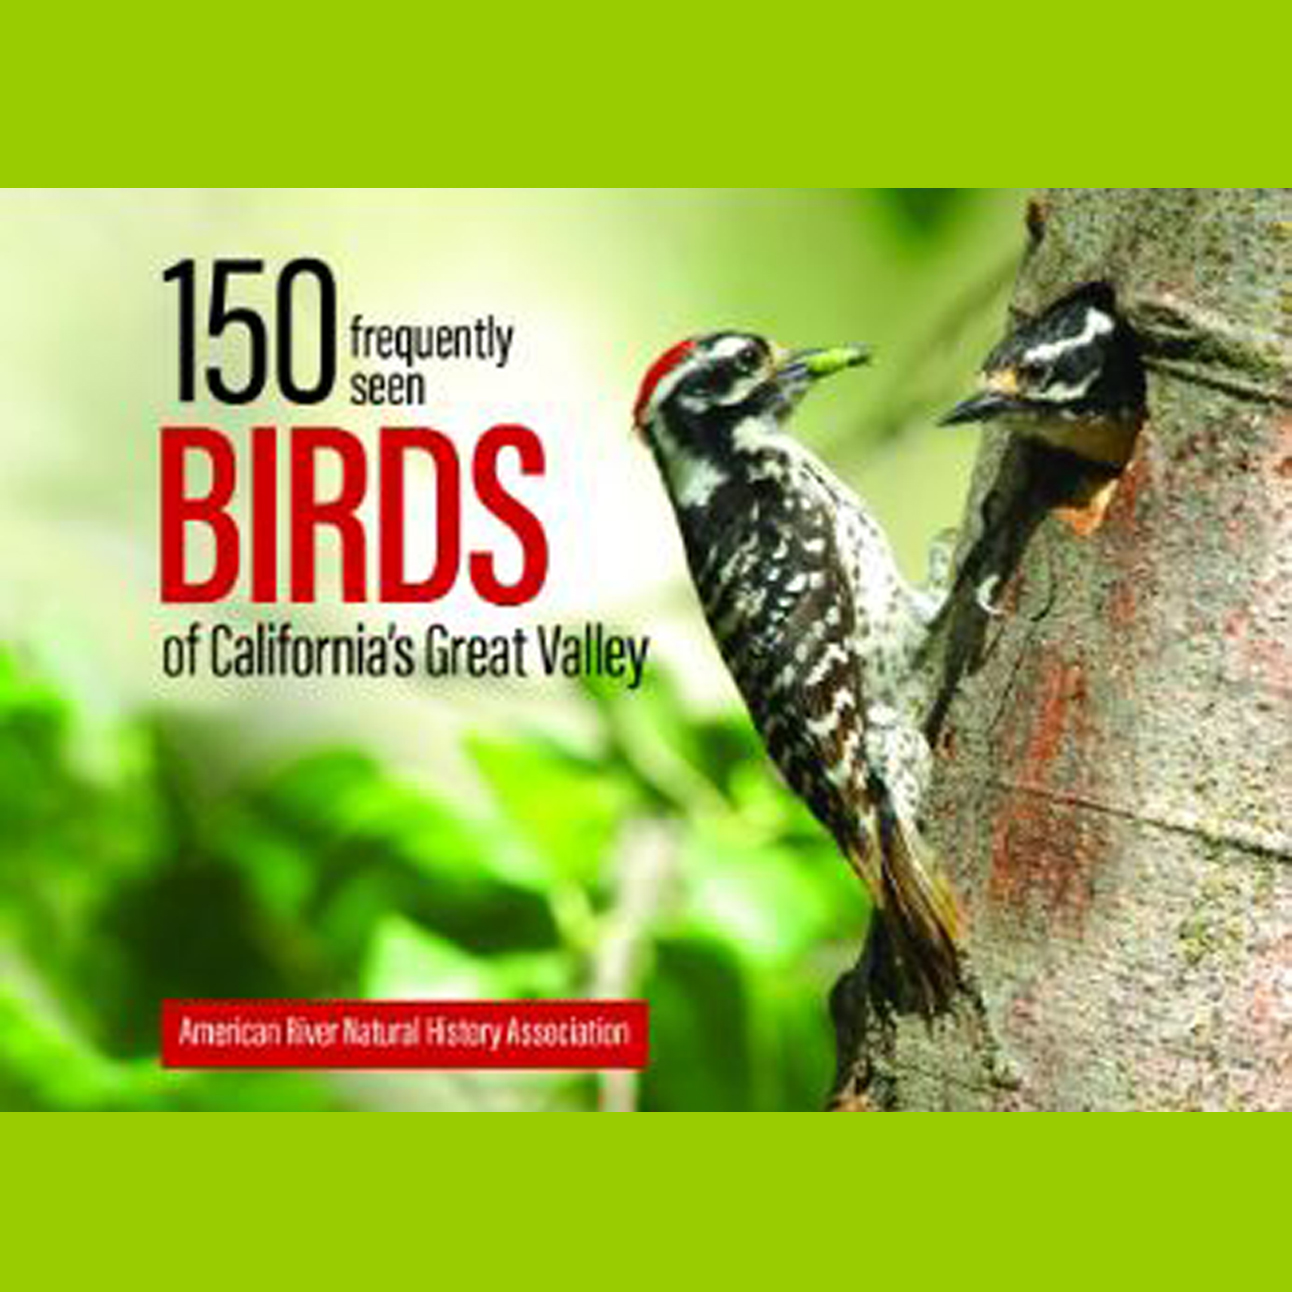 150 Frequently Seen Birds features full color images of many species of California's Great Valley